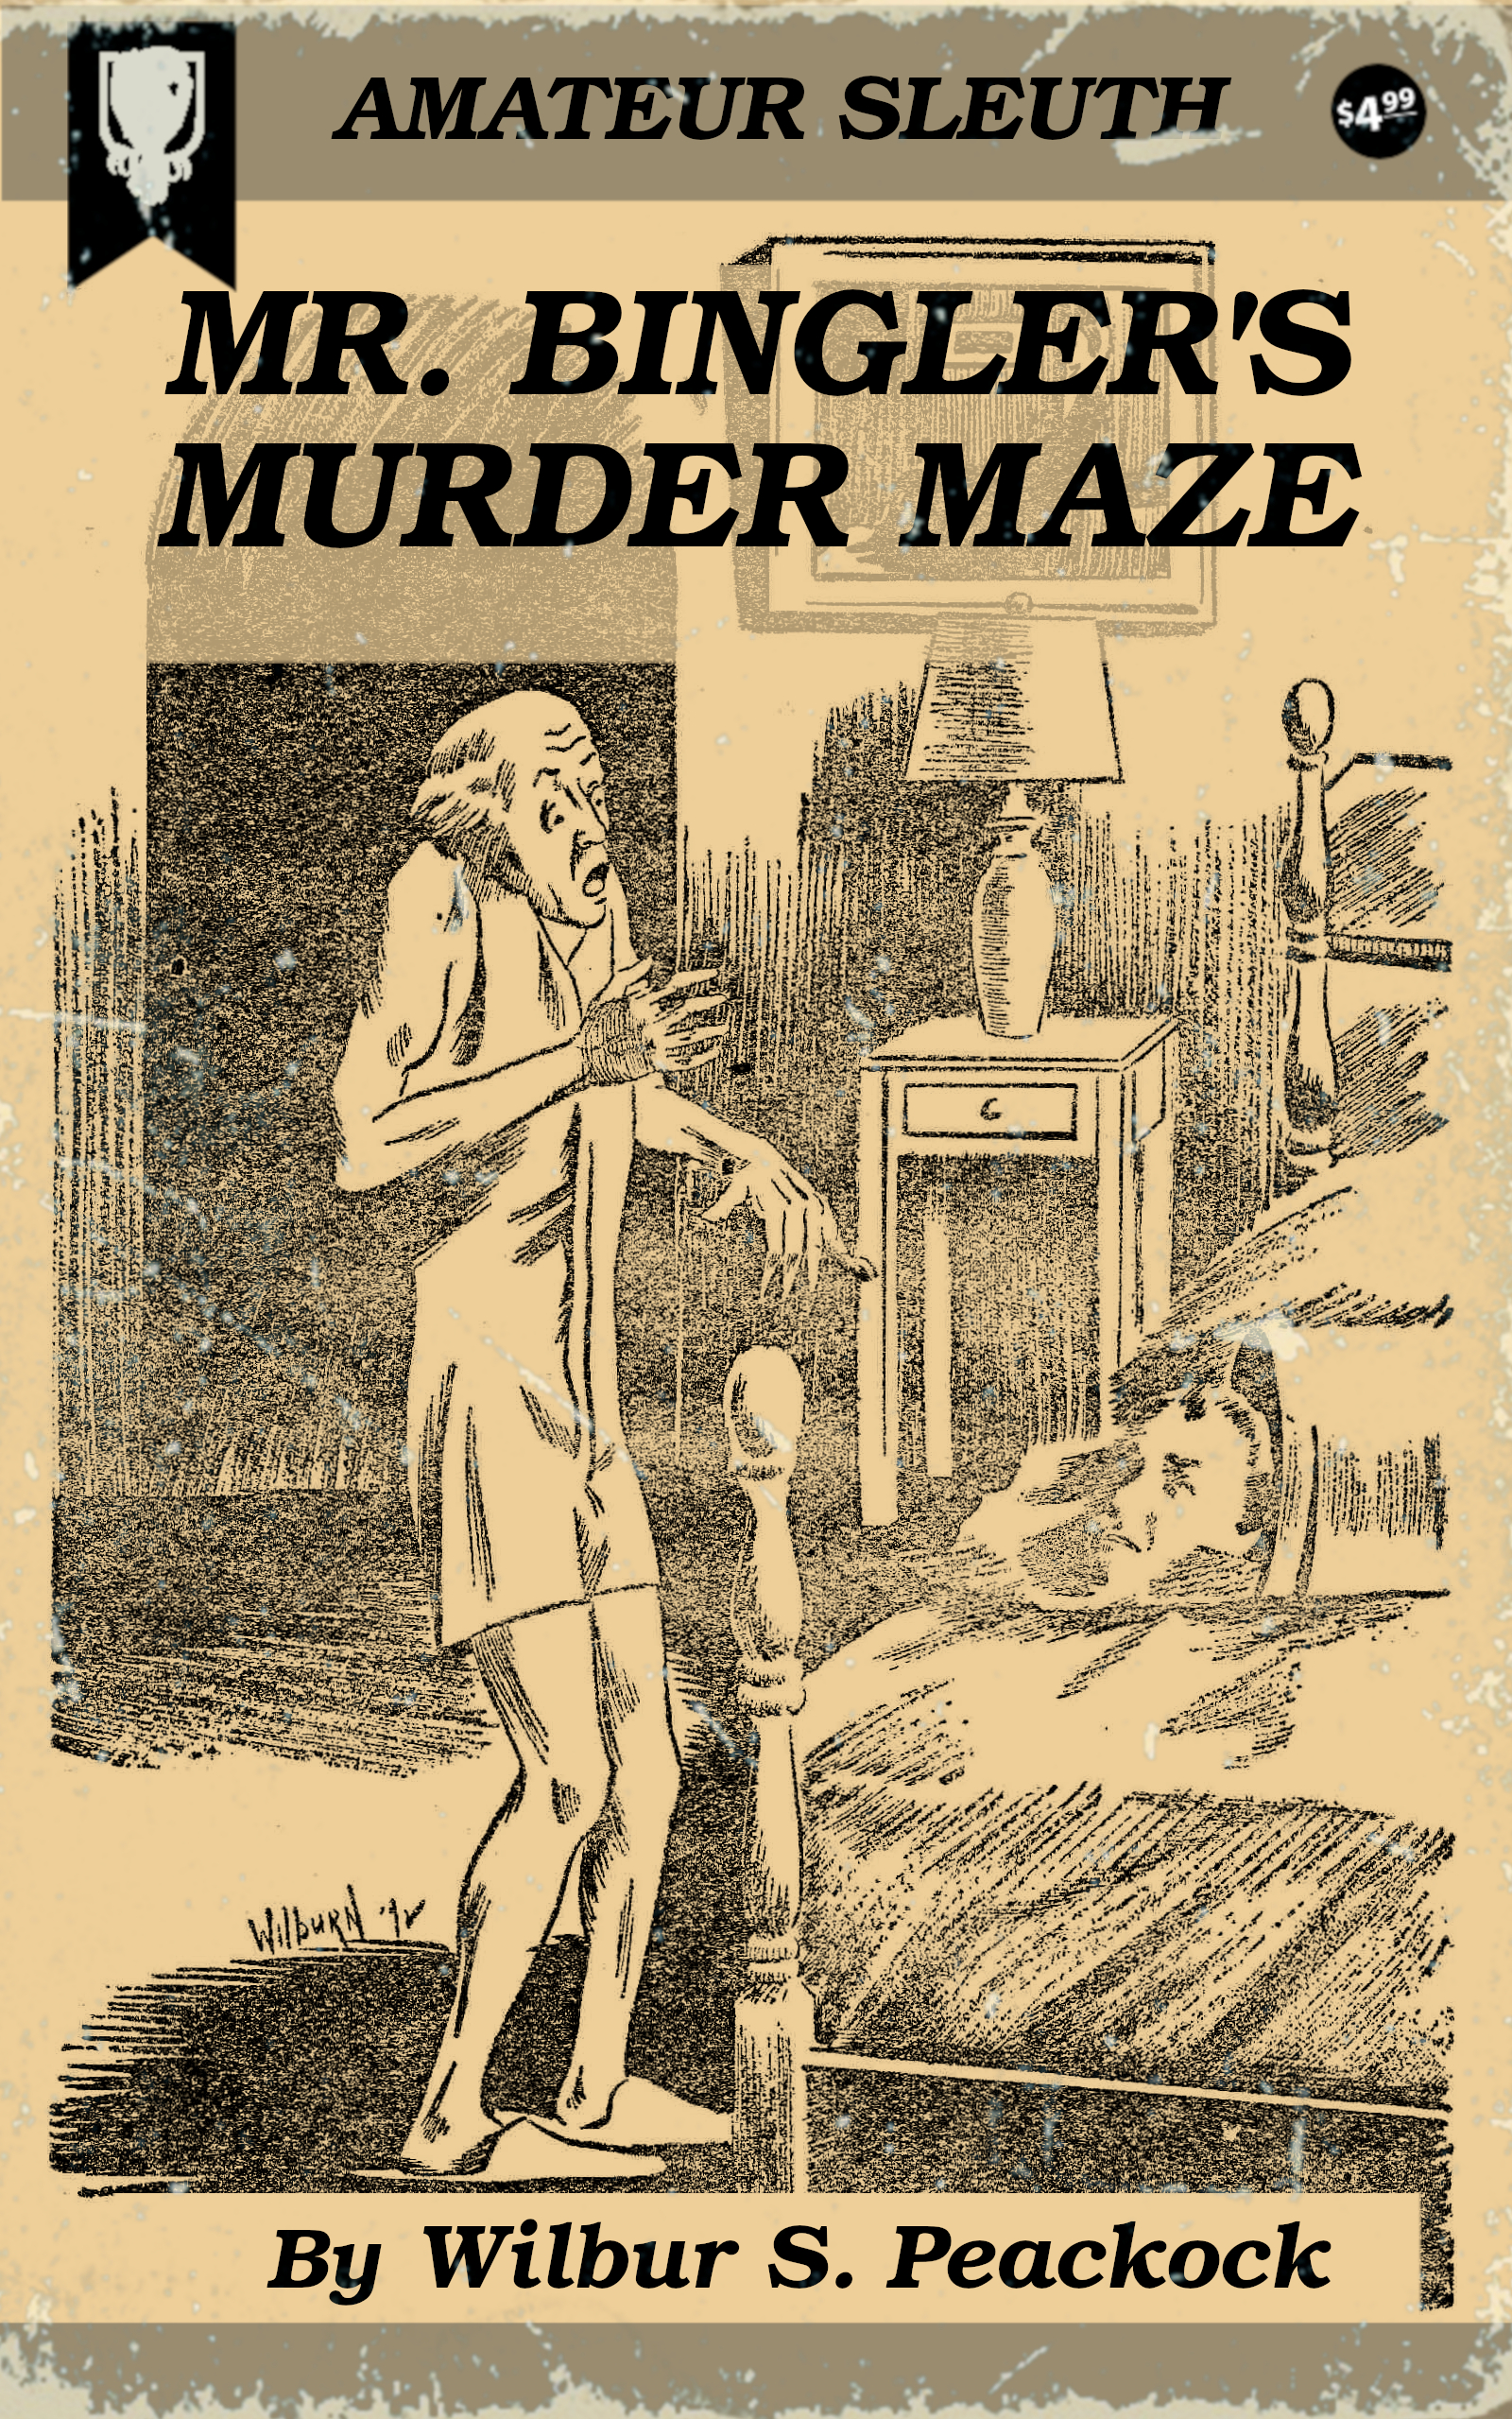 Mr. Bingler's Murder Maze, by Wilbur S. Peacock